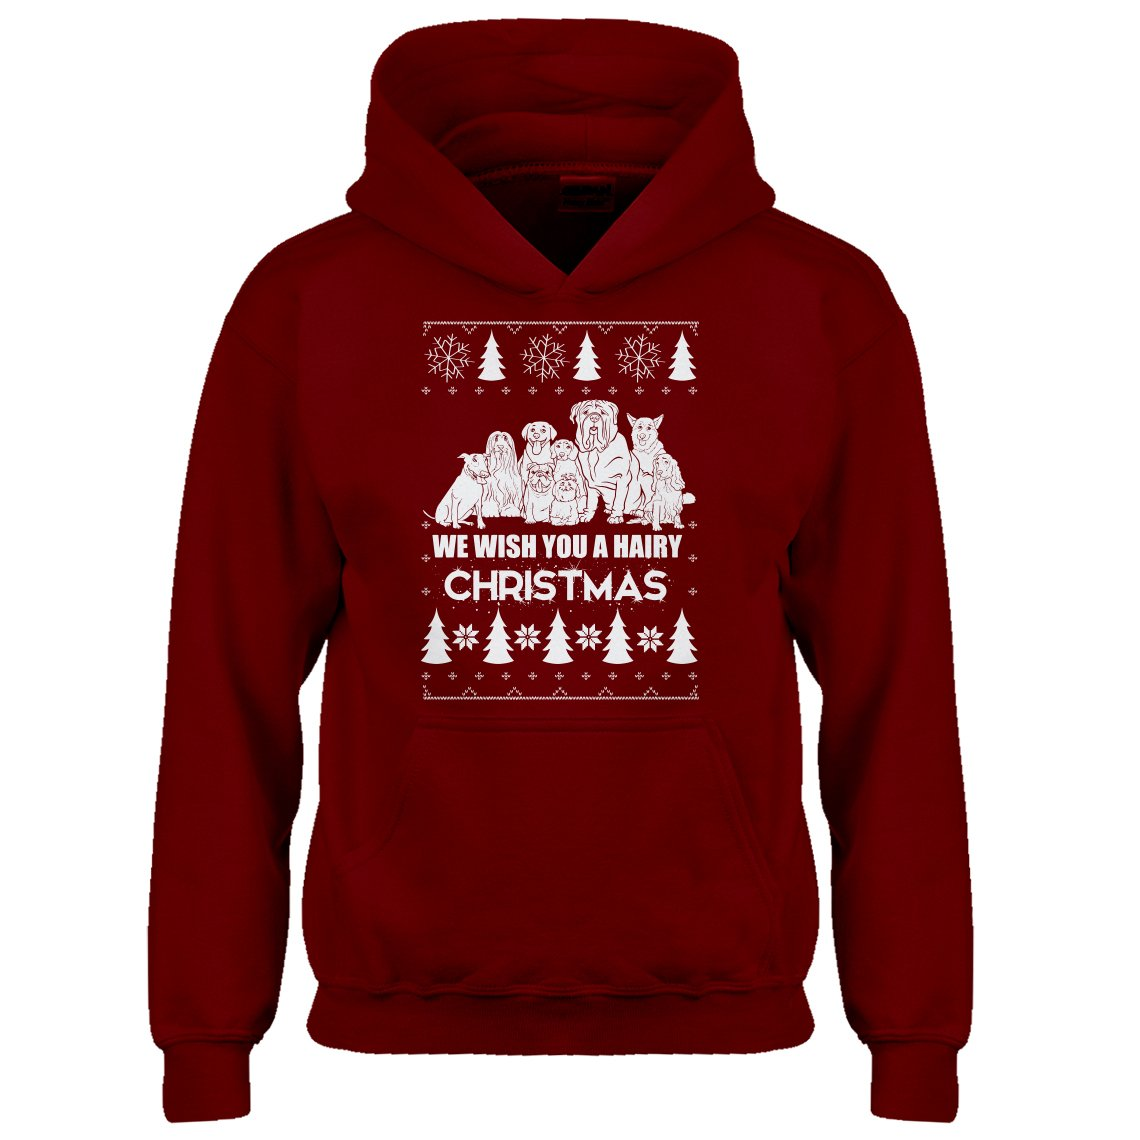 Indica Plateau Youth We Wish You a Hairy Christmas Kids Hoodie